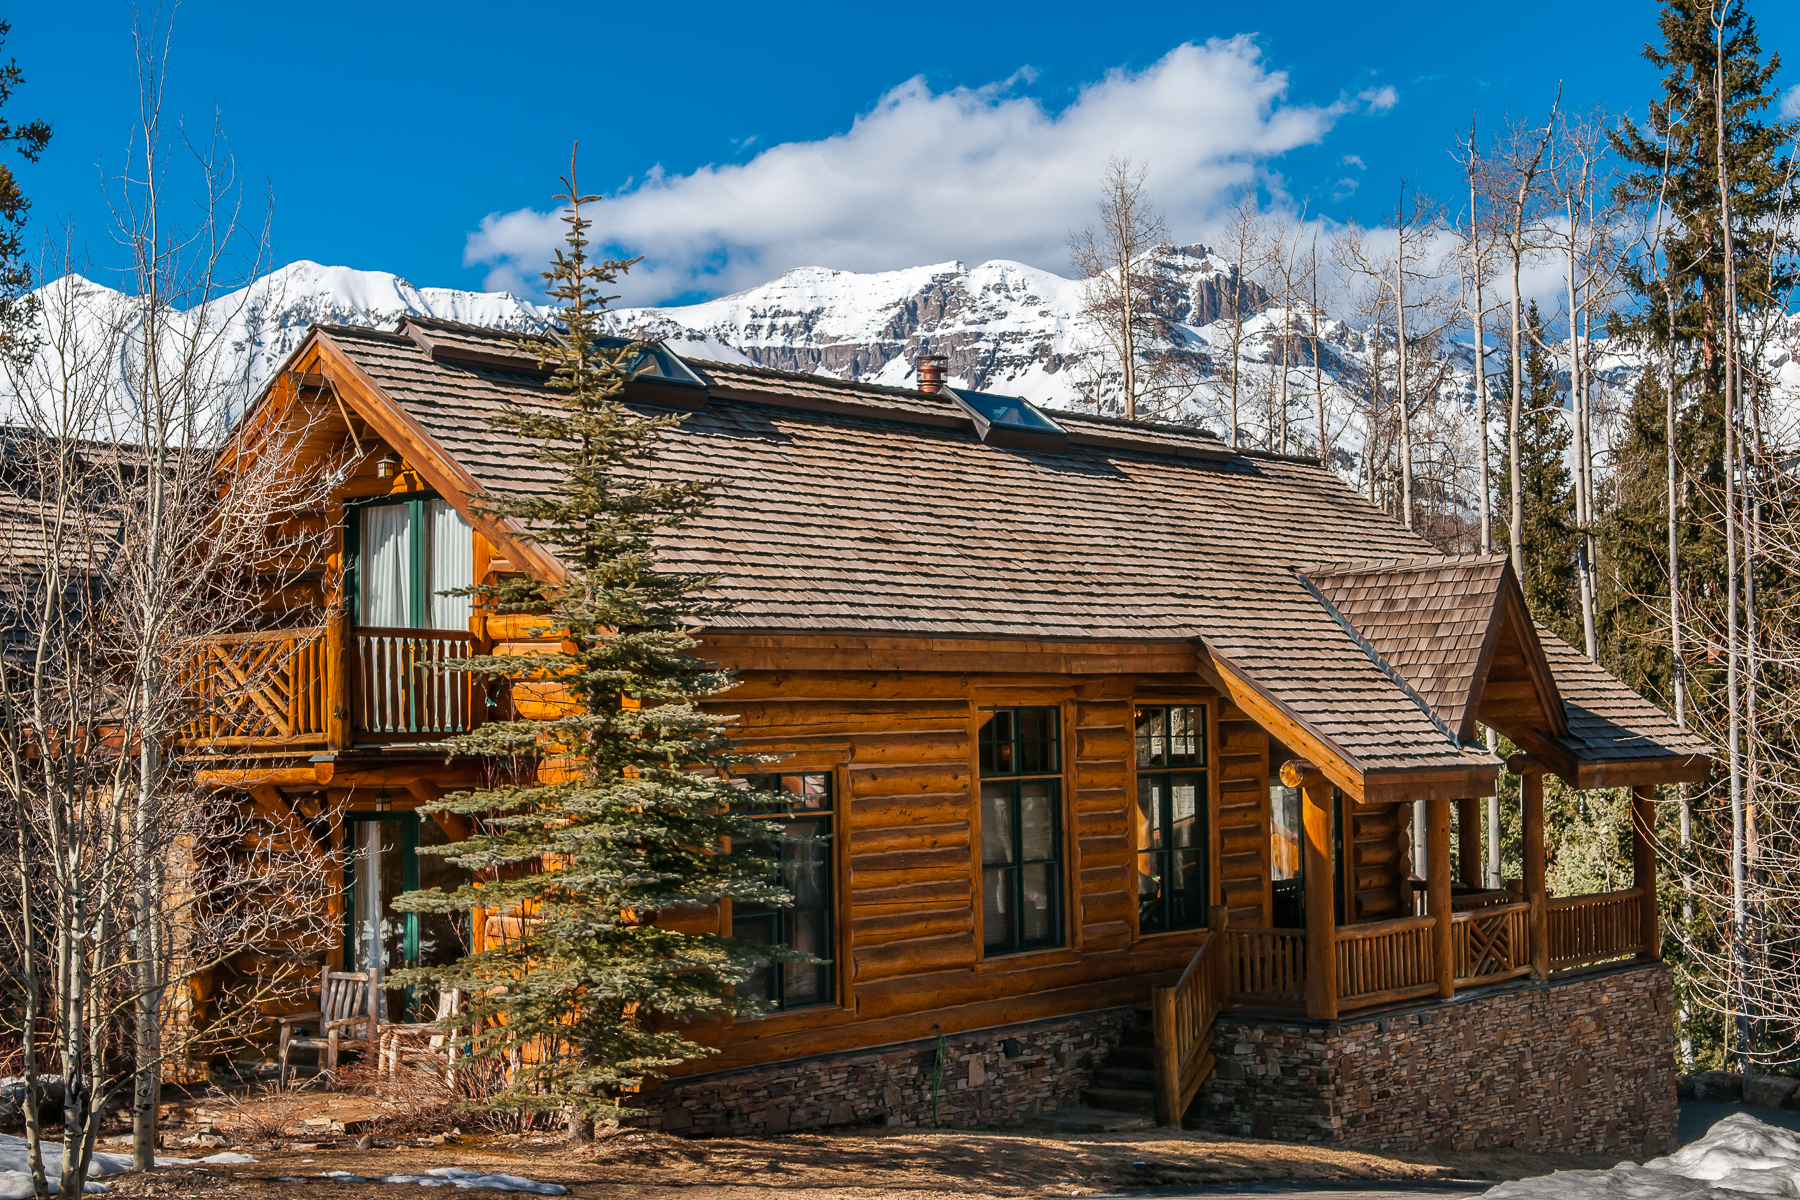 Condominium for Sale at Double Cabins, Unit 2 115 San Joaquin Road Double Cabins, Unit 2 Telluride, Colorado, 81435 United States